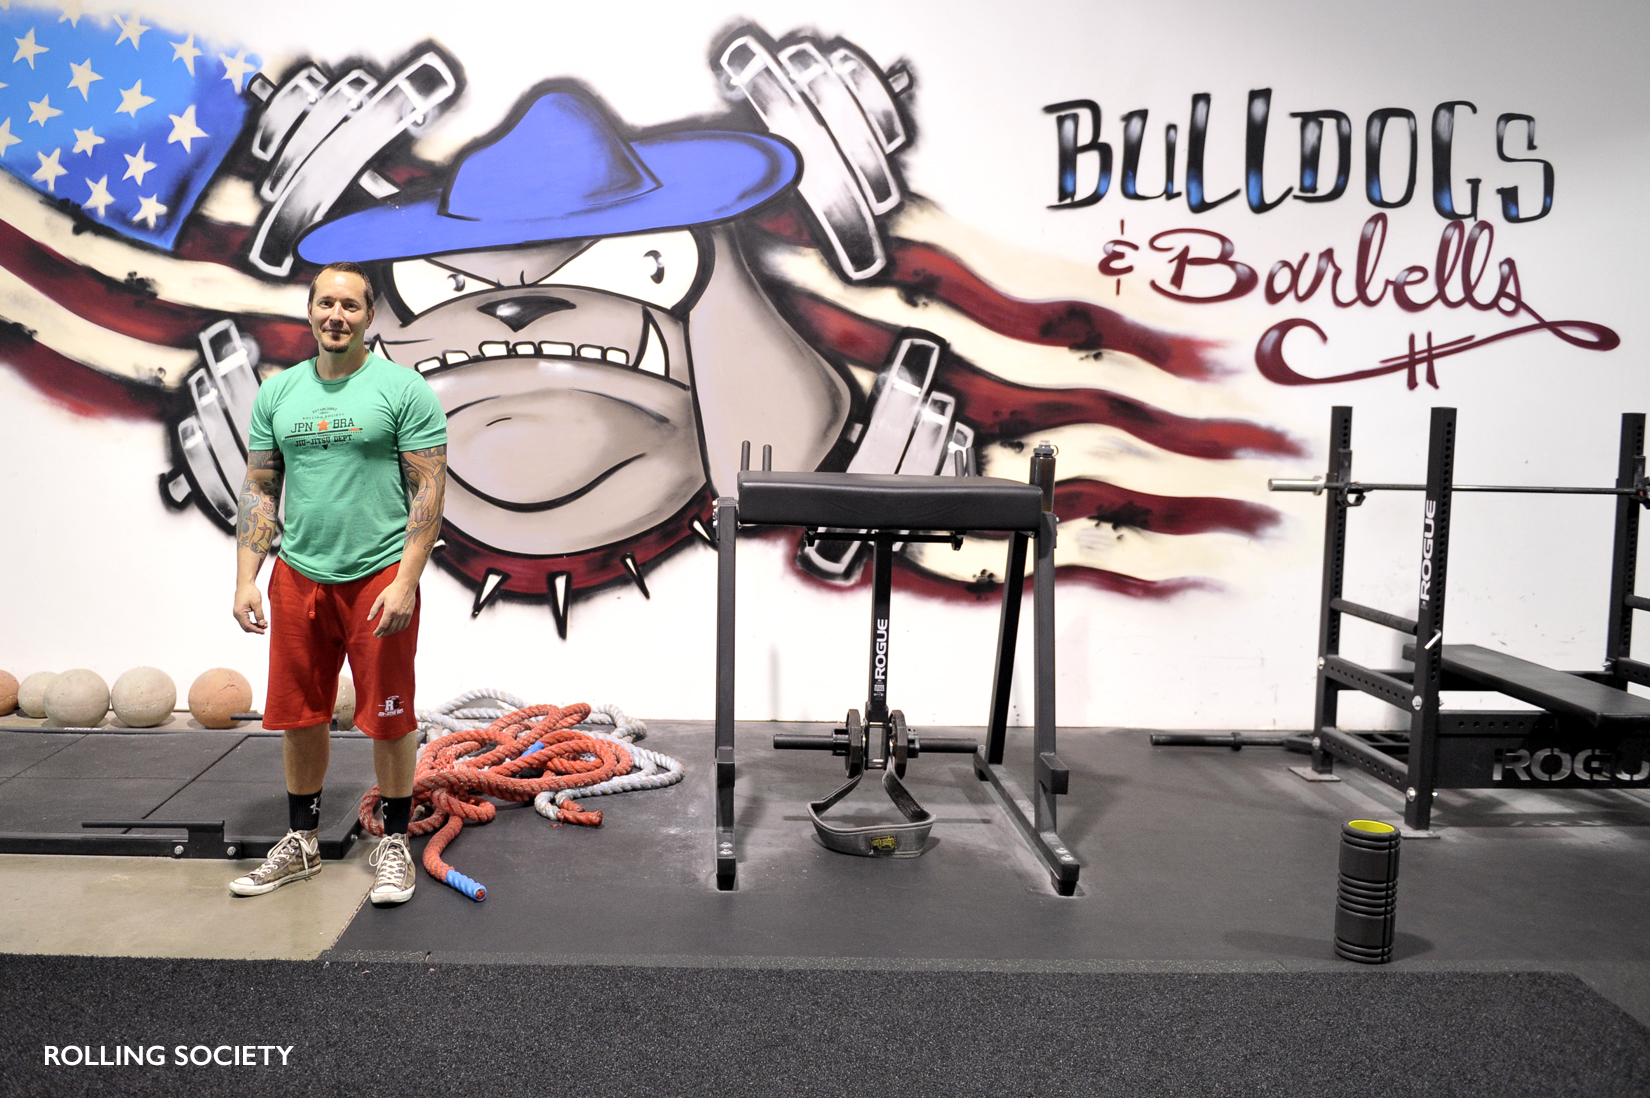 Keith strength and conditioning coach and owner of Bulldogs & Barbells